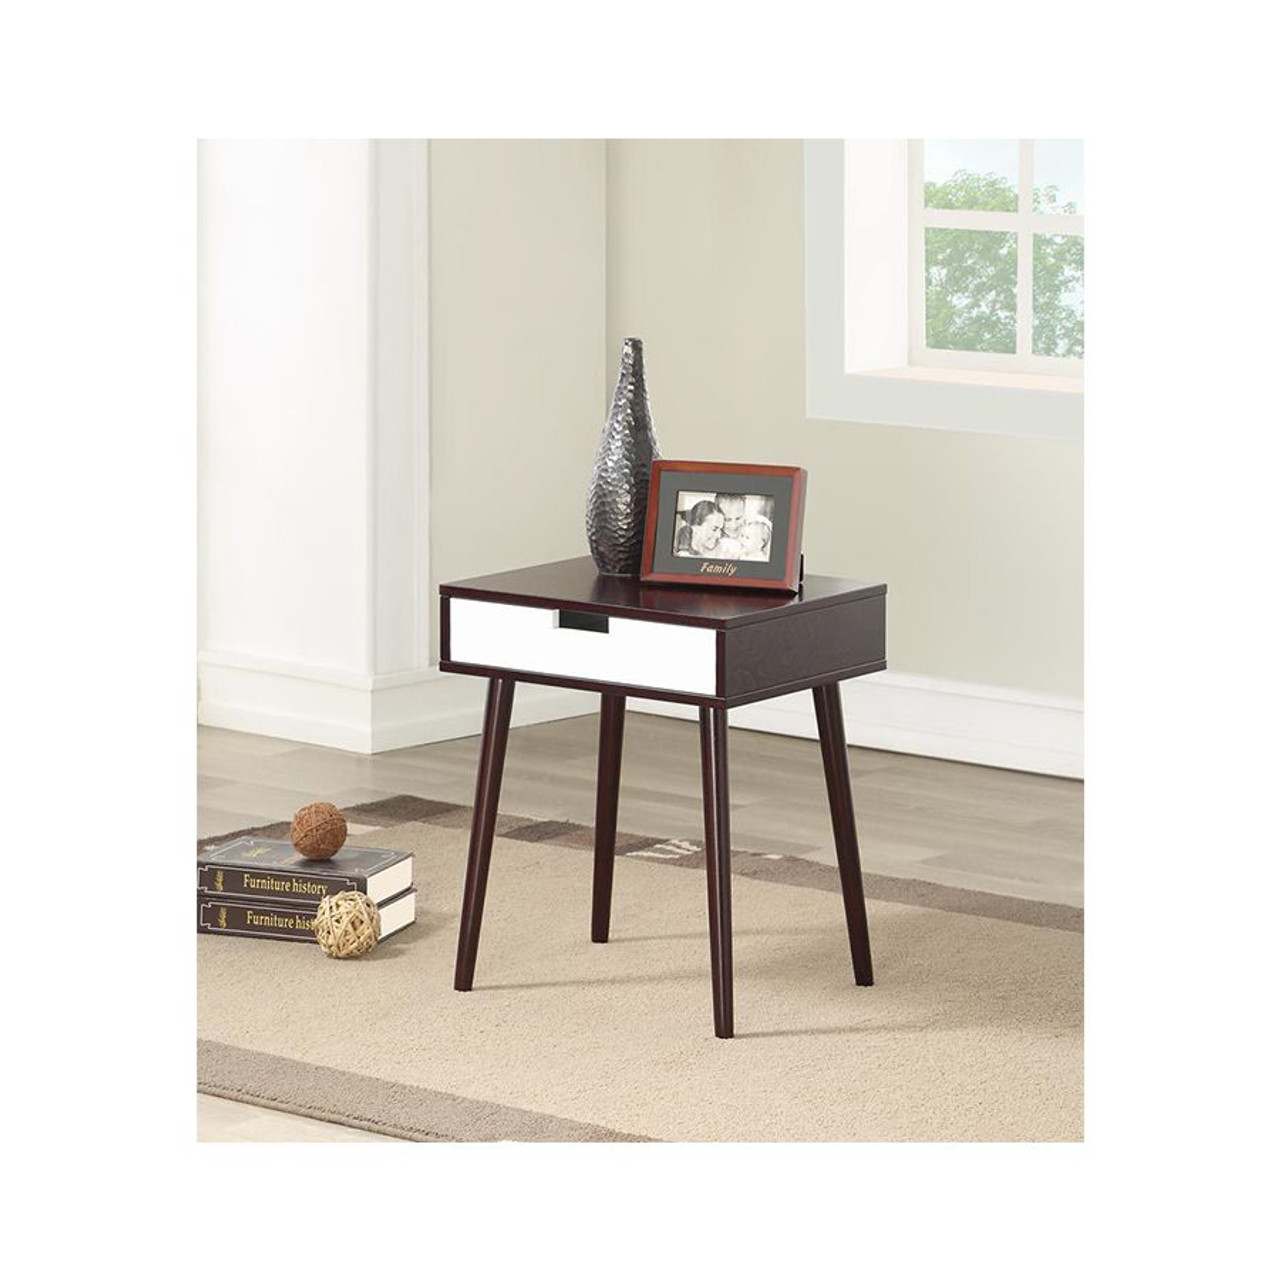 Espresso Color Hardwood End Table, Night Stand with Drawer